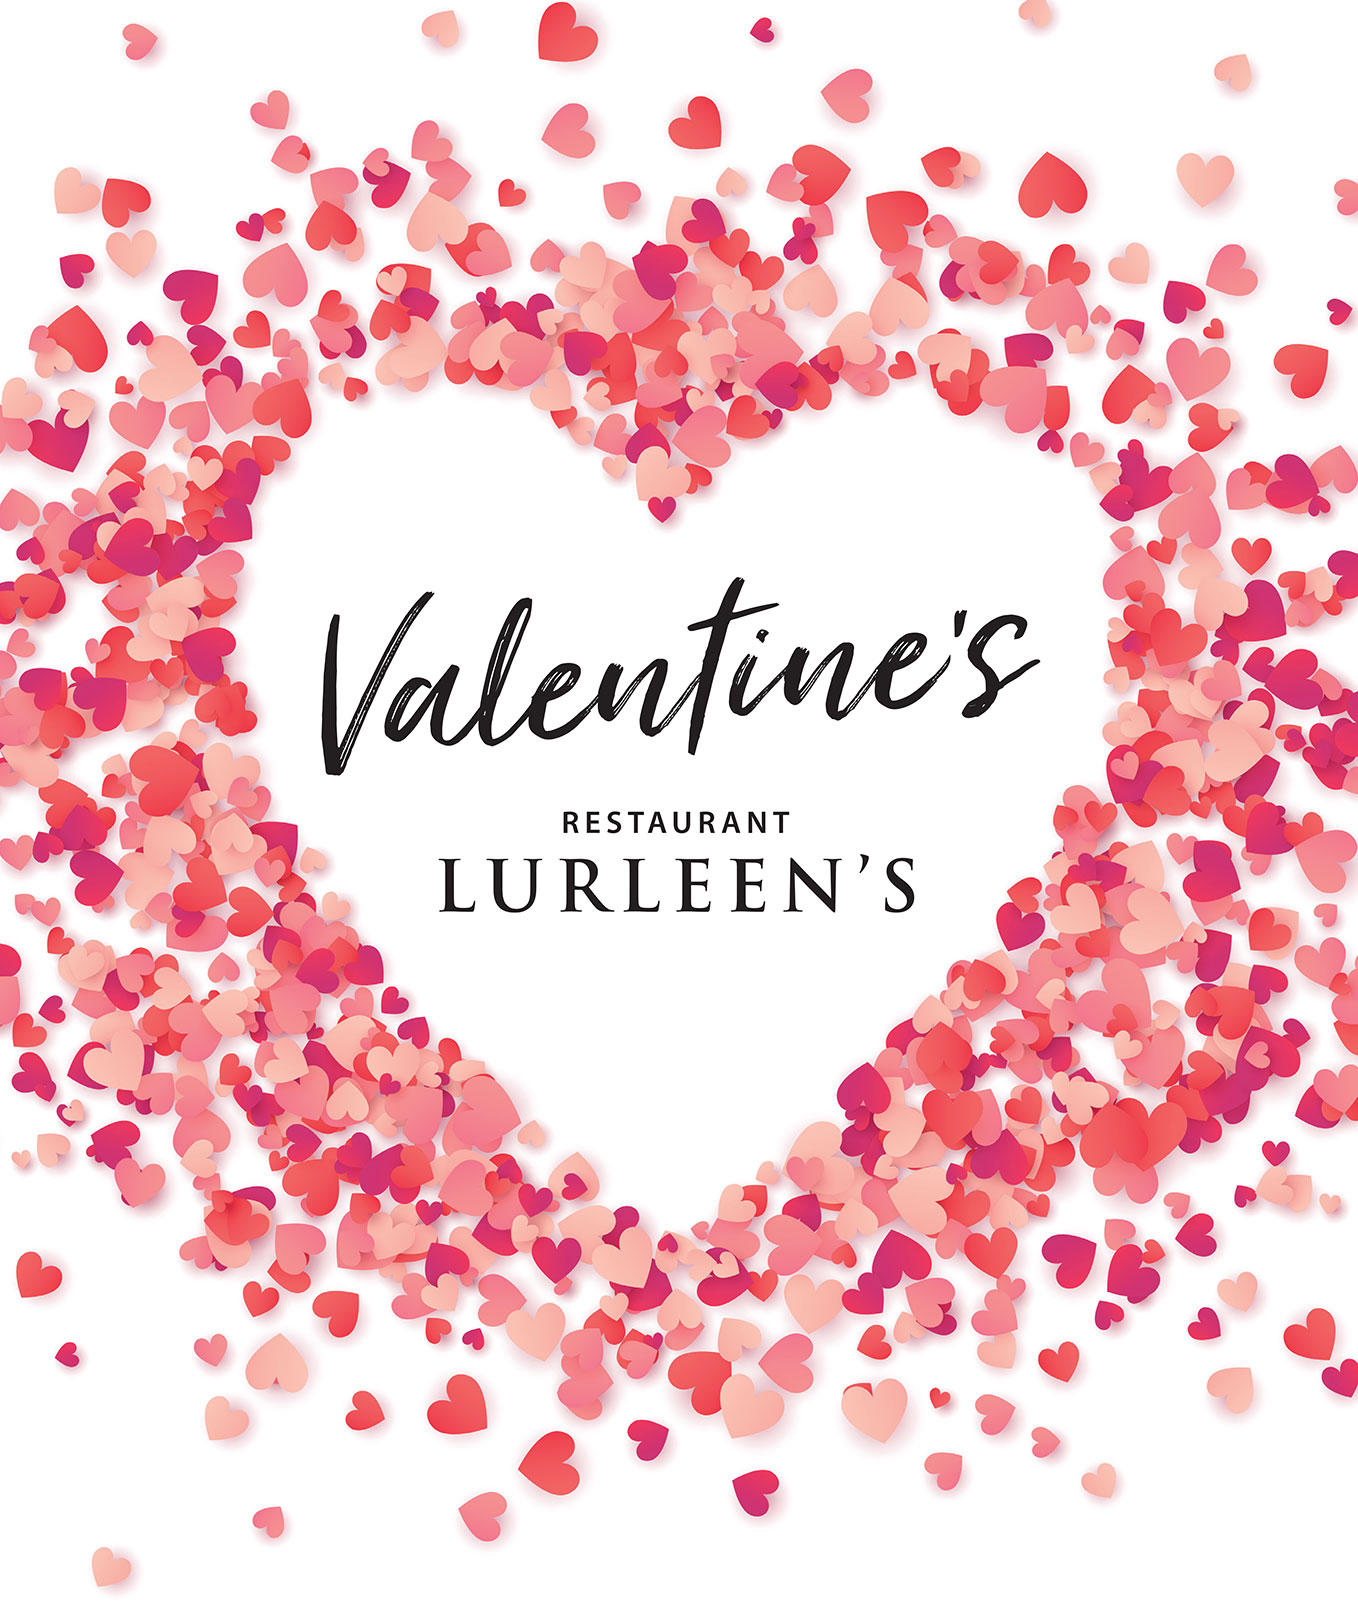 Valentine's day special from Sirromet Winery